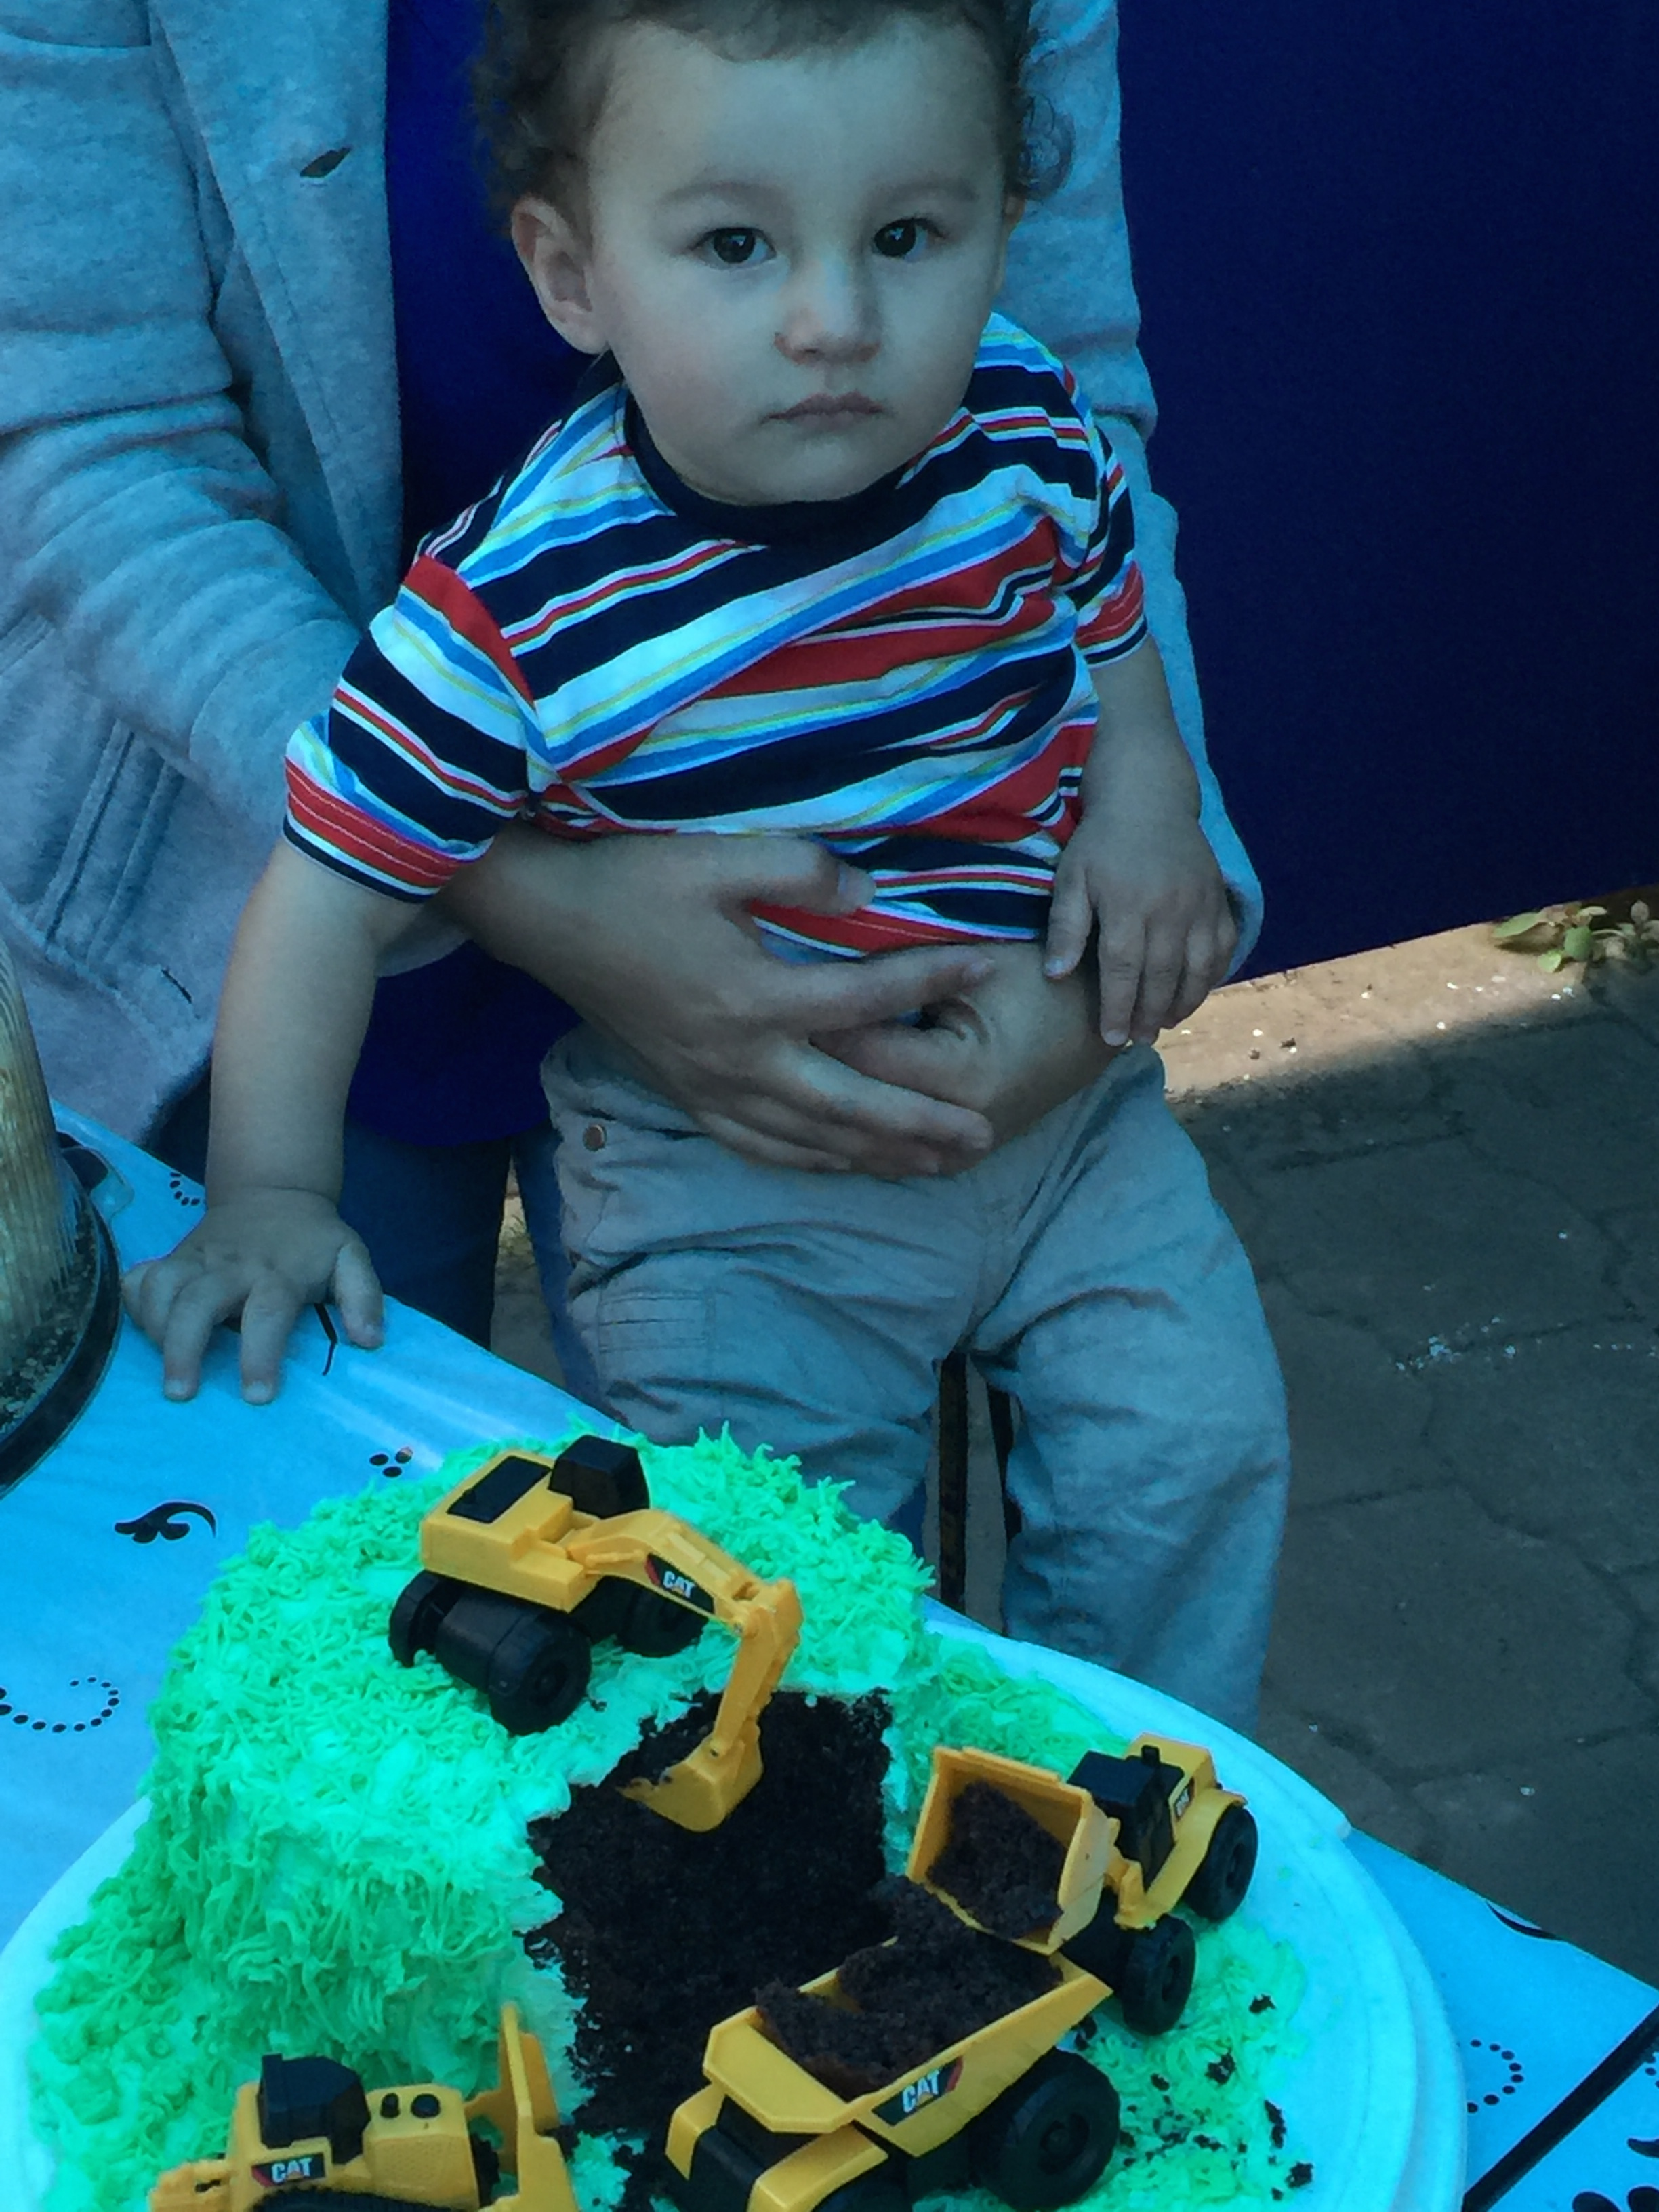 Our grandson, Robbie, and his 1st birthday cake. A construction site!